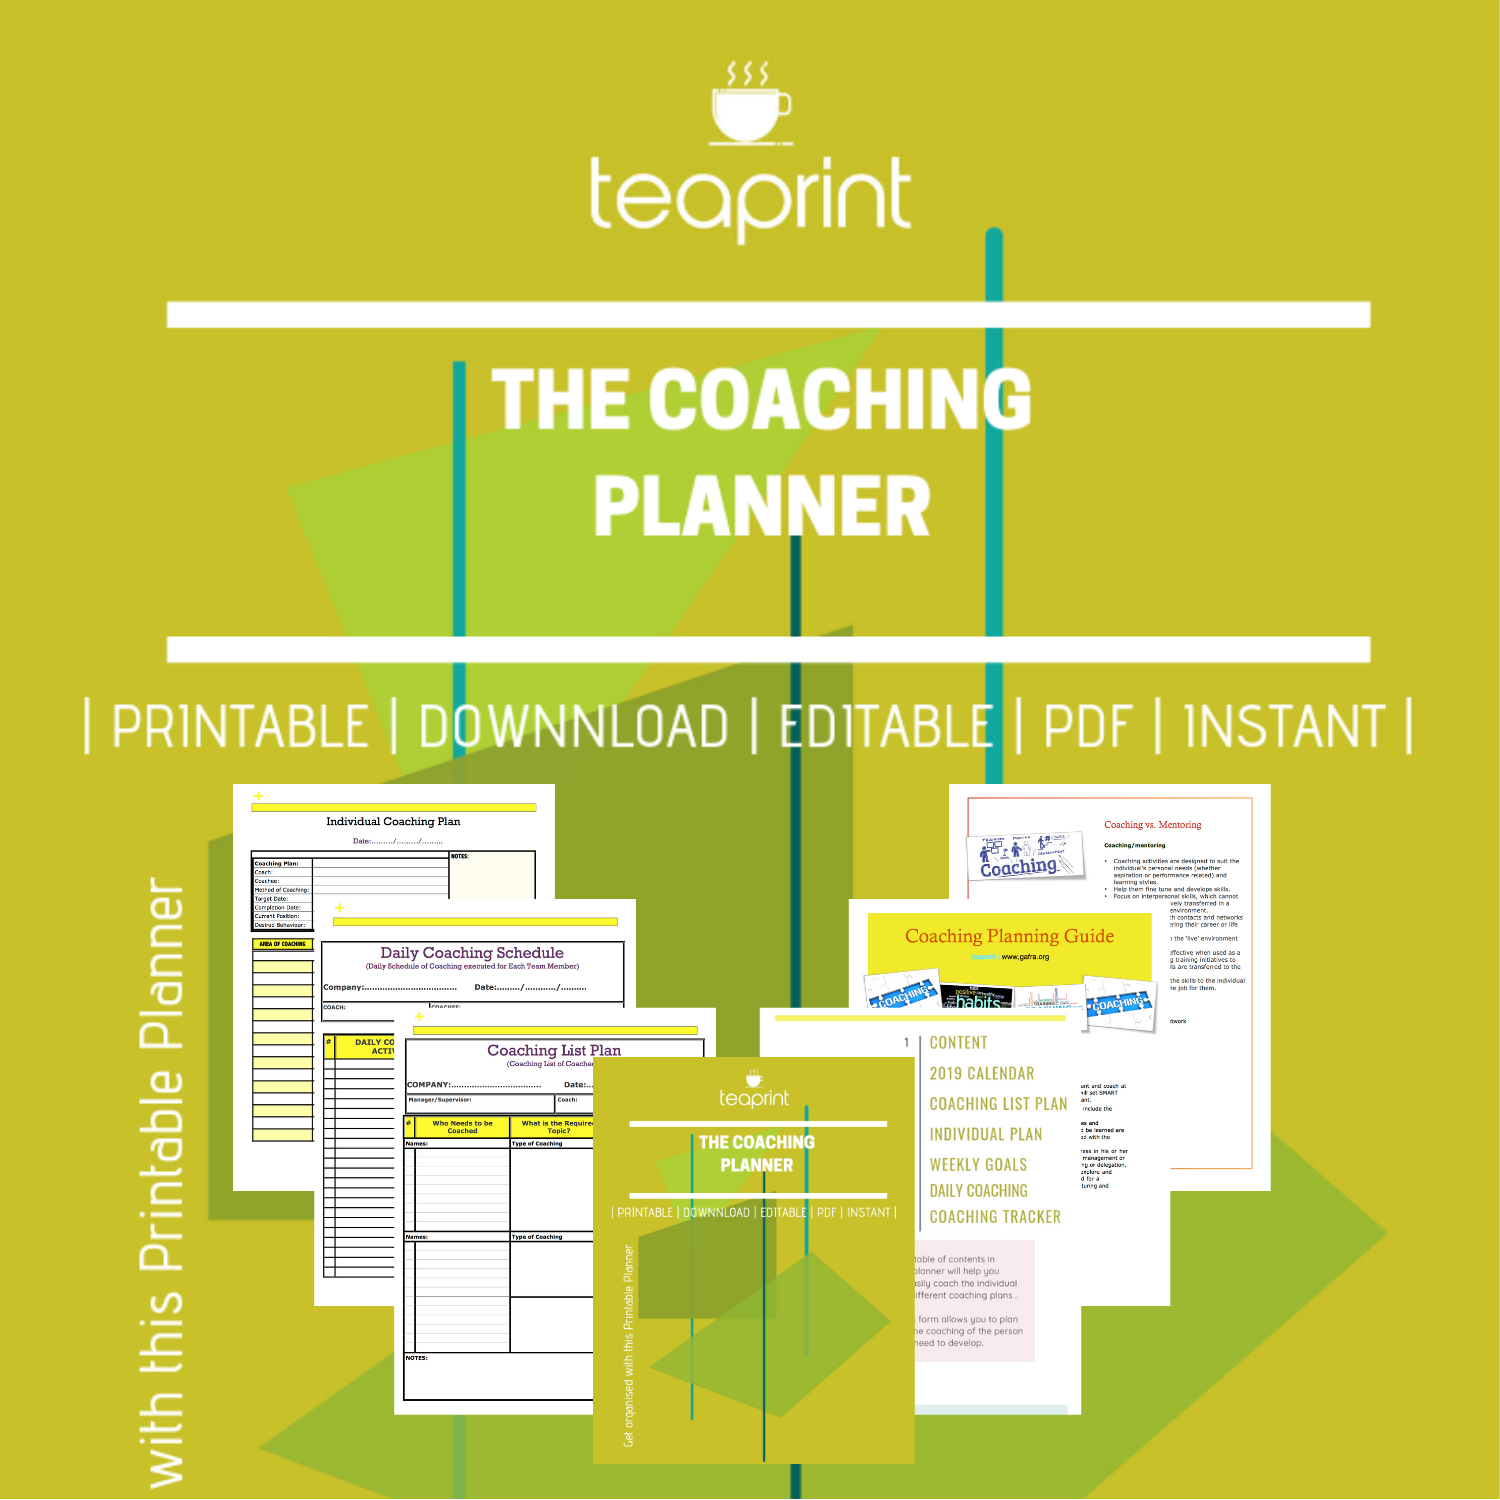 GET YOUR PRINTABLE COACHING PLANNER HERE